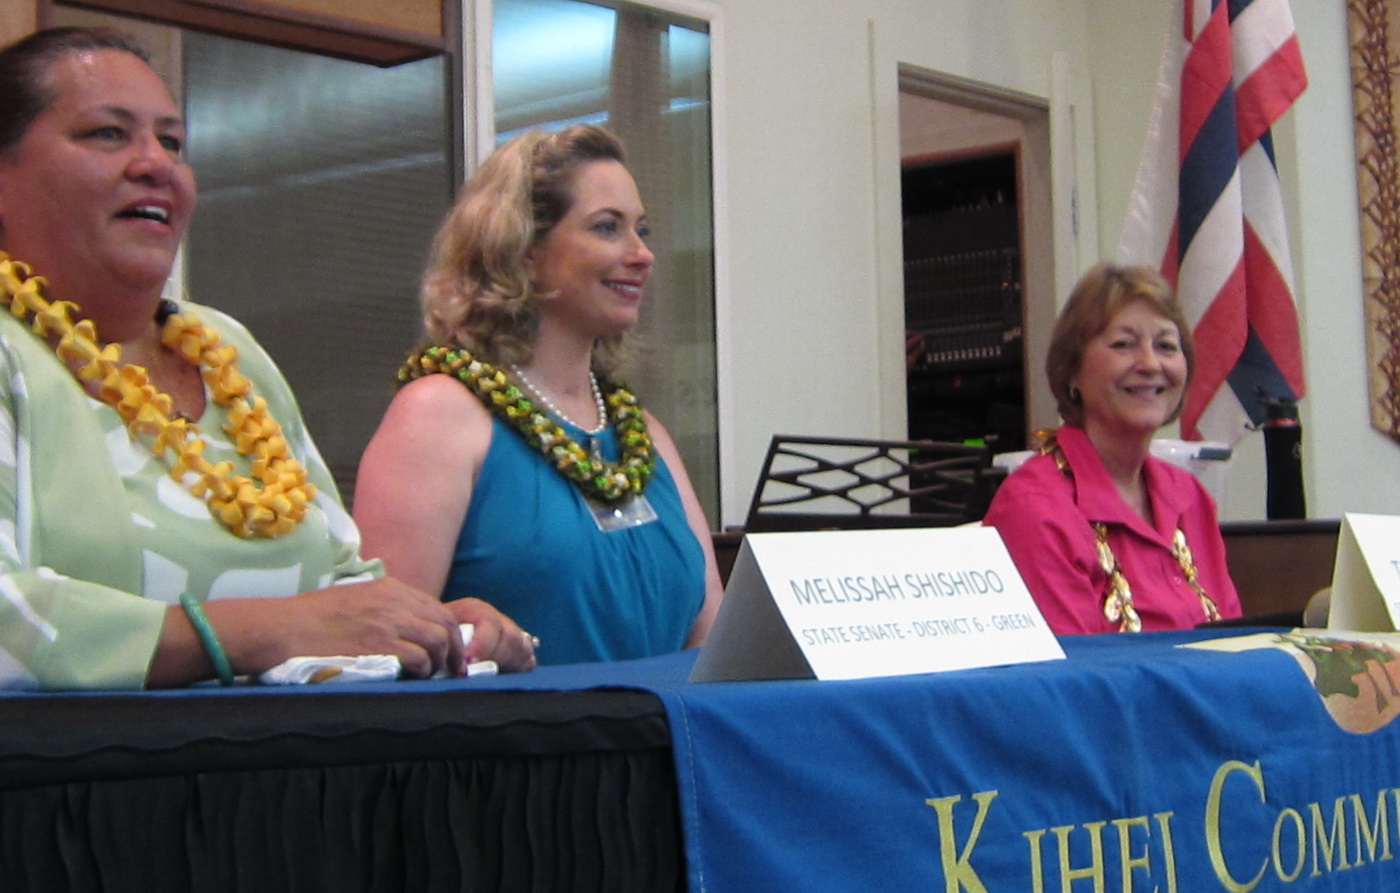 MAUI NEWS REPORTS ON KCA CANDIDATE FORUM IN TWO FRONT PAGE ARTICLES  (first)